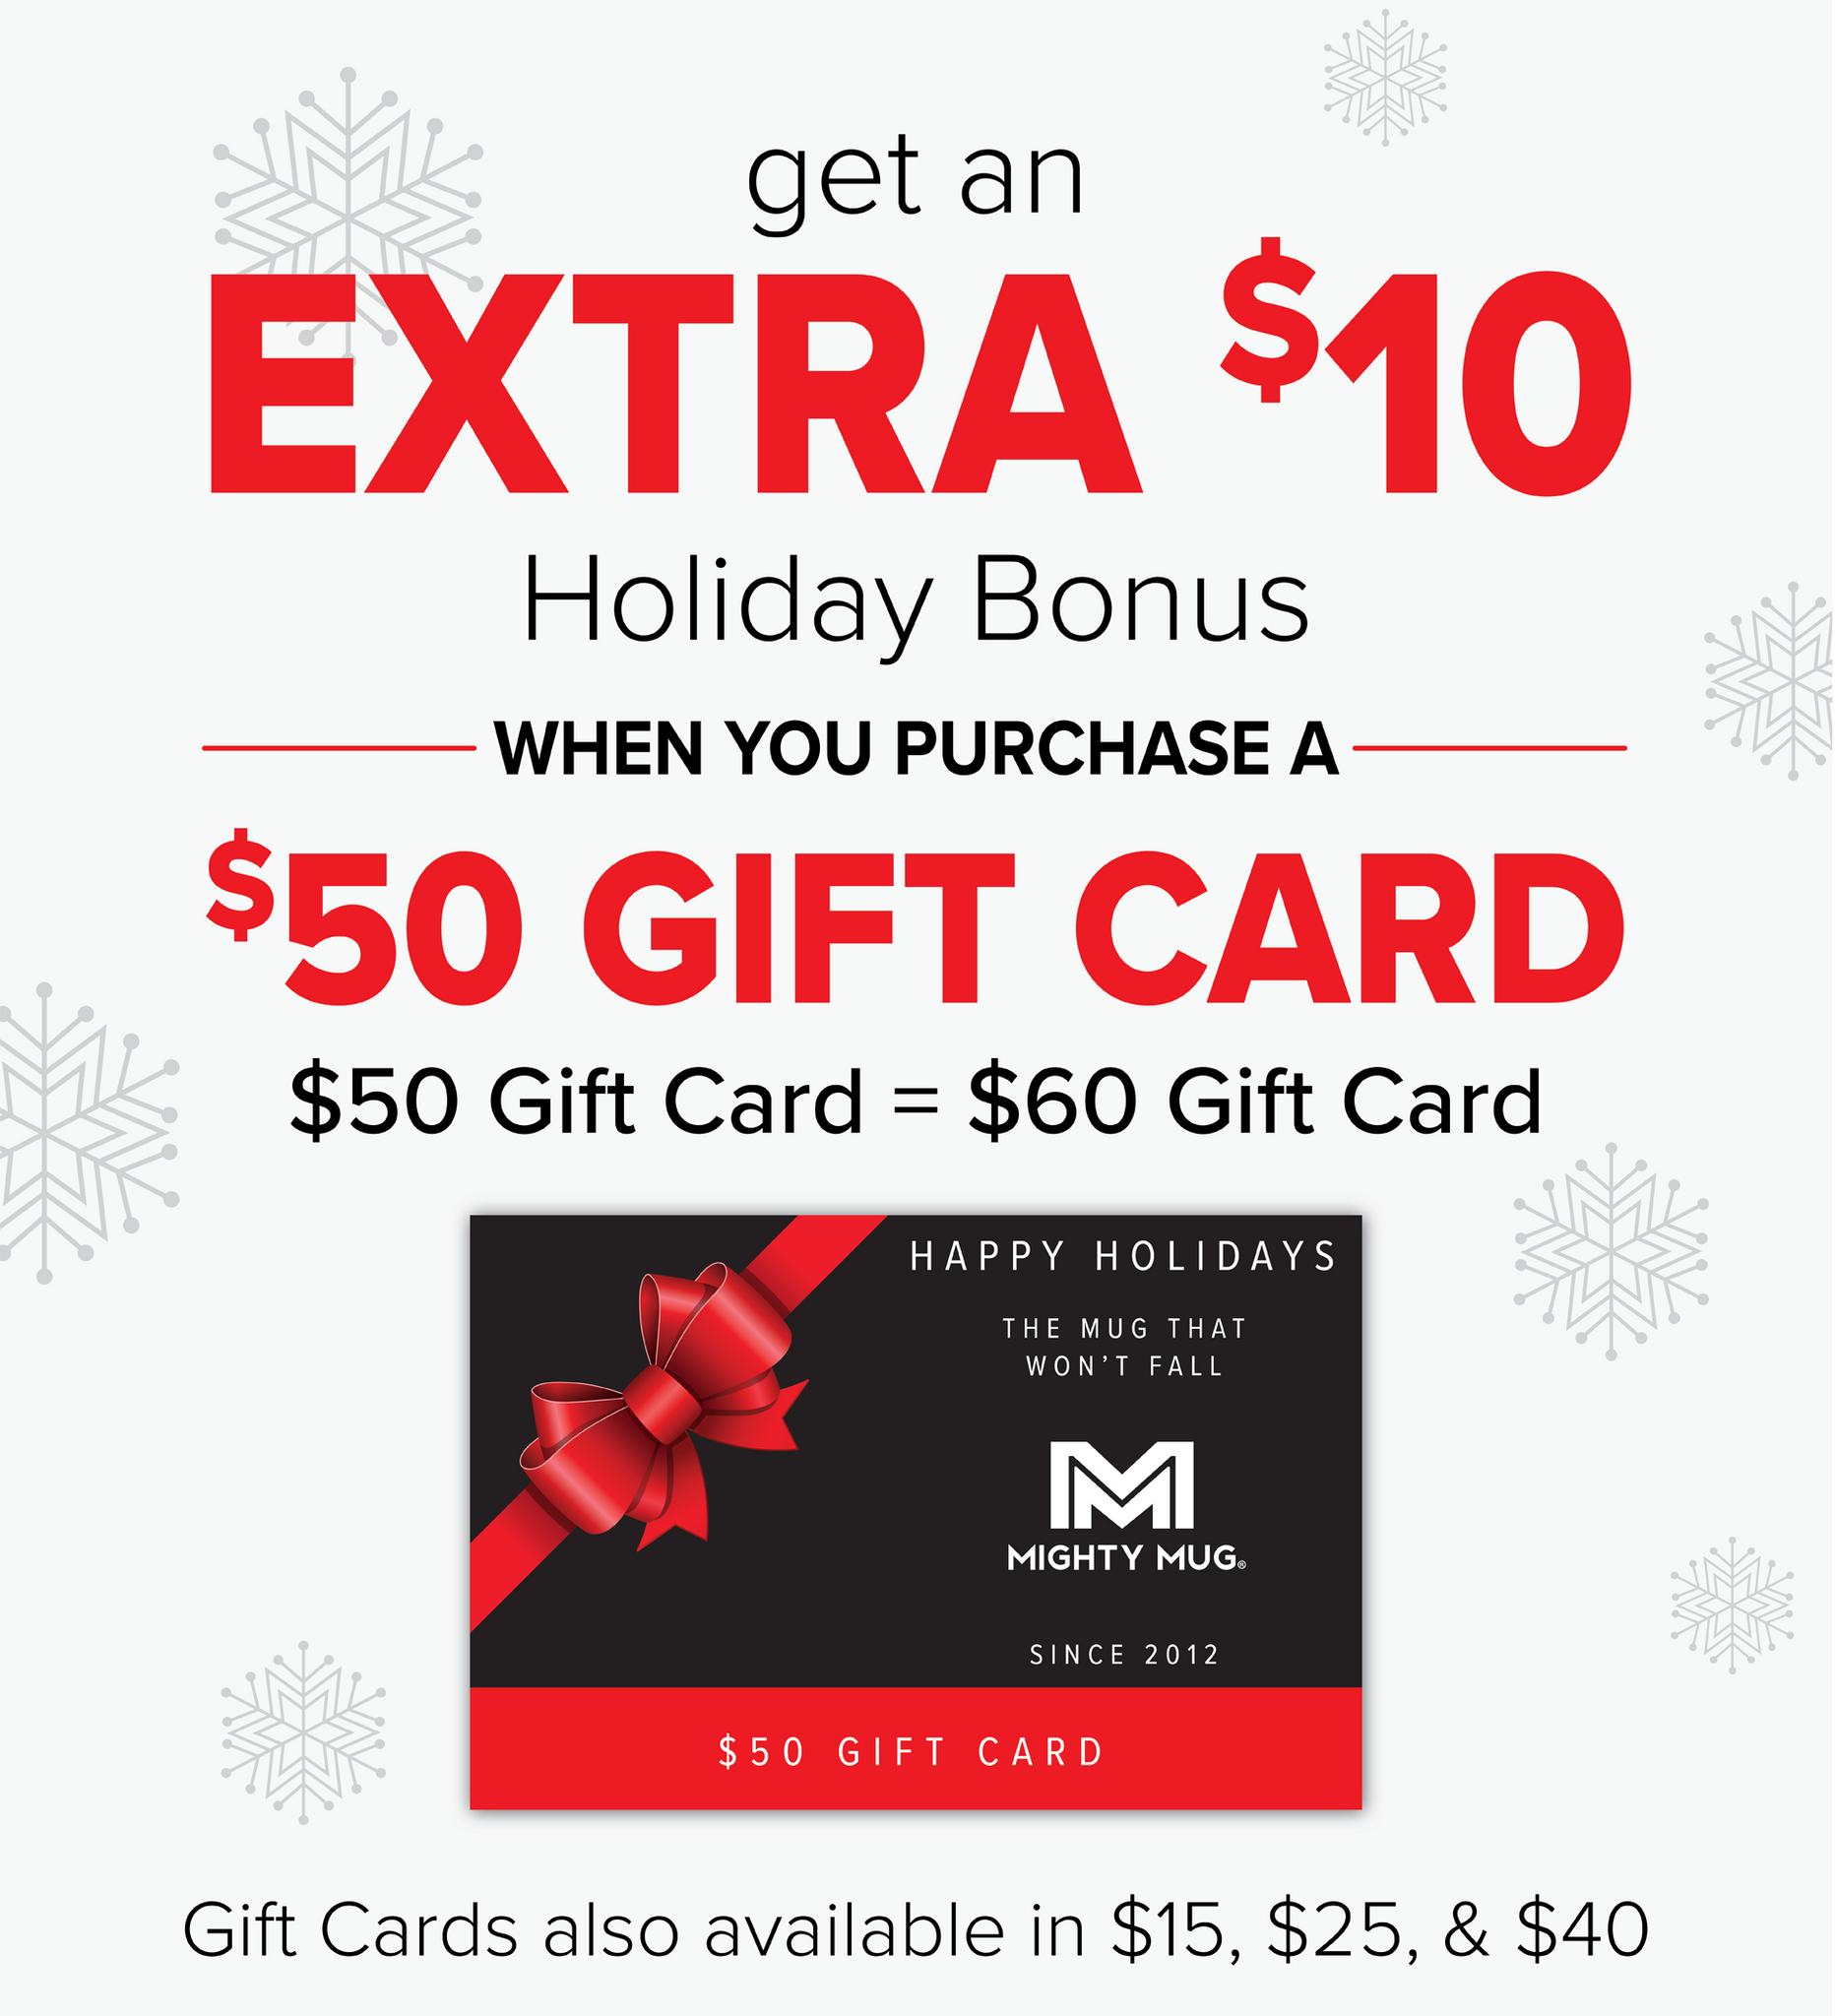 Get a $10 Bonus, when you buy $50 Gift Card - The Mighty Mug